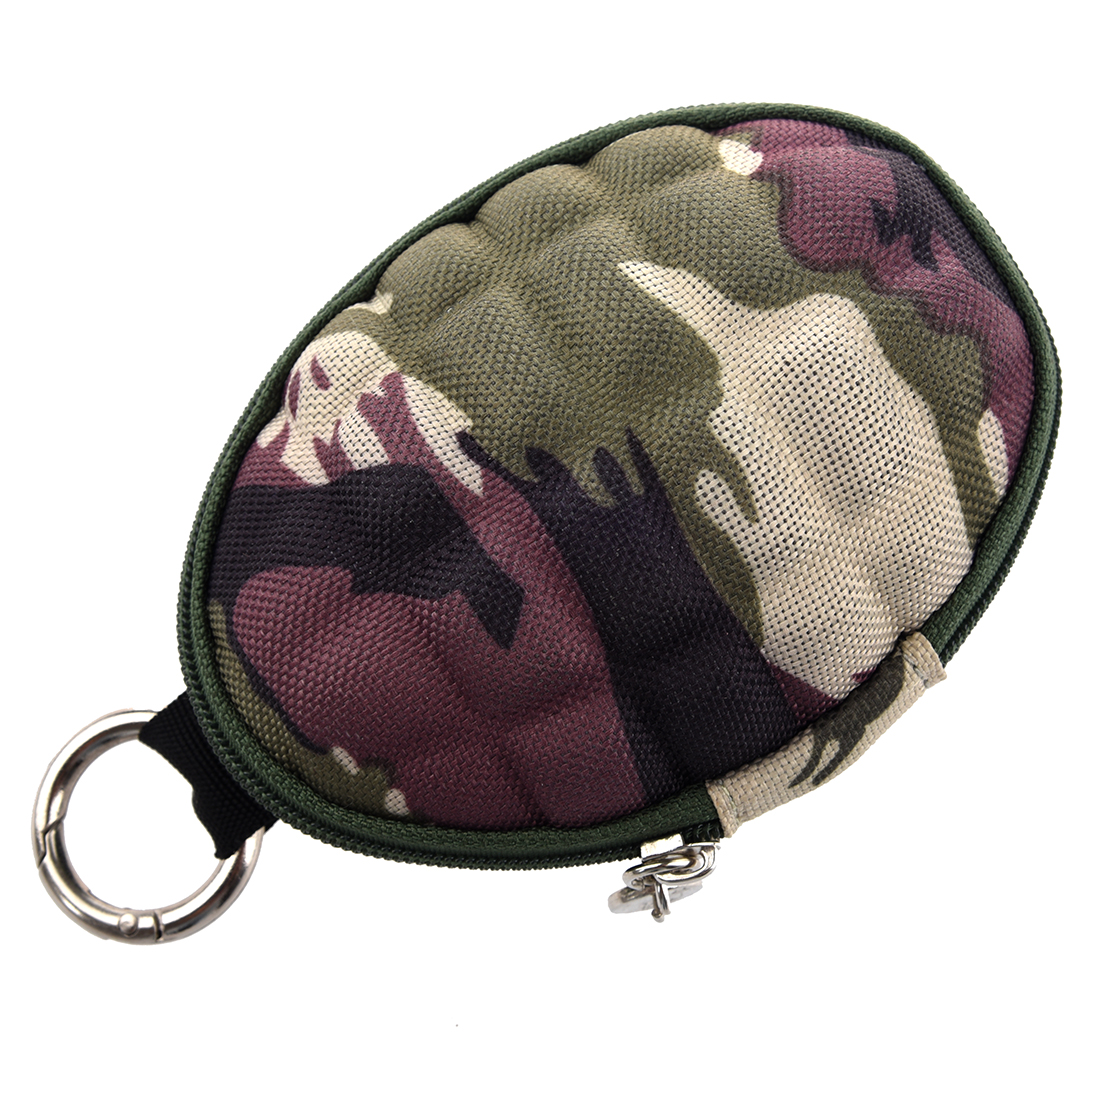 ASDS Camouflage Key & Coin Case Duck  coin case / key case / Pass Case carabiner typ With six consecutive hook sanrenmu sk009d lucky number 9 carabiner with key ring